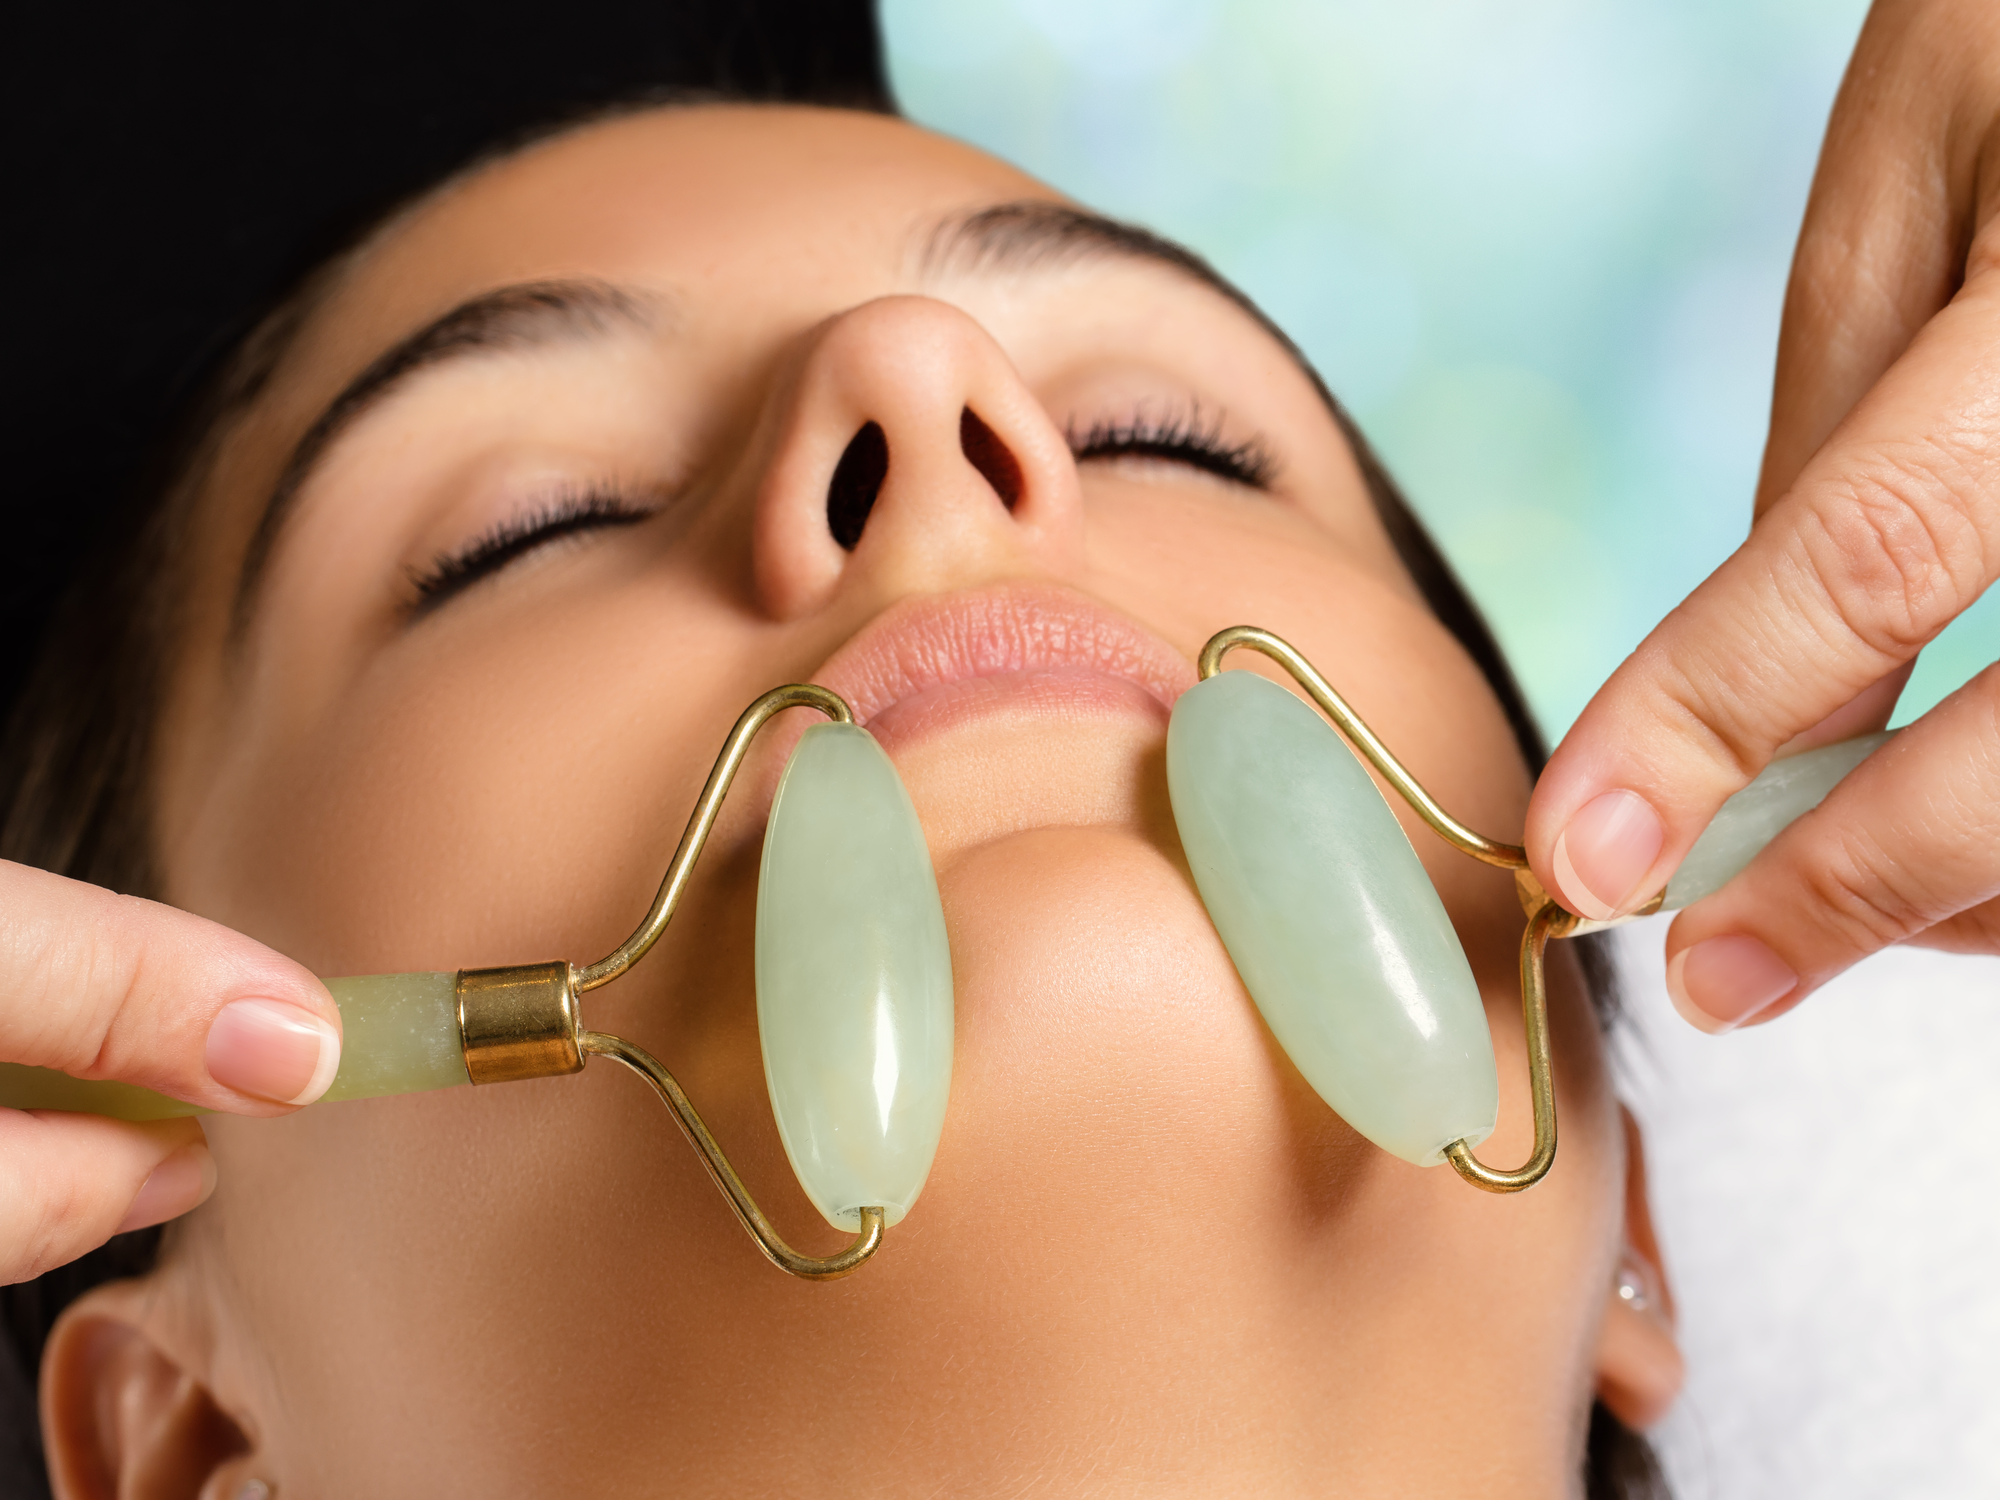 Normal Massage Therapy vs. Jade Massage Therapy